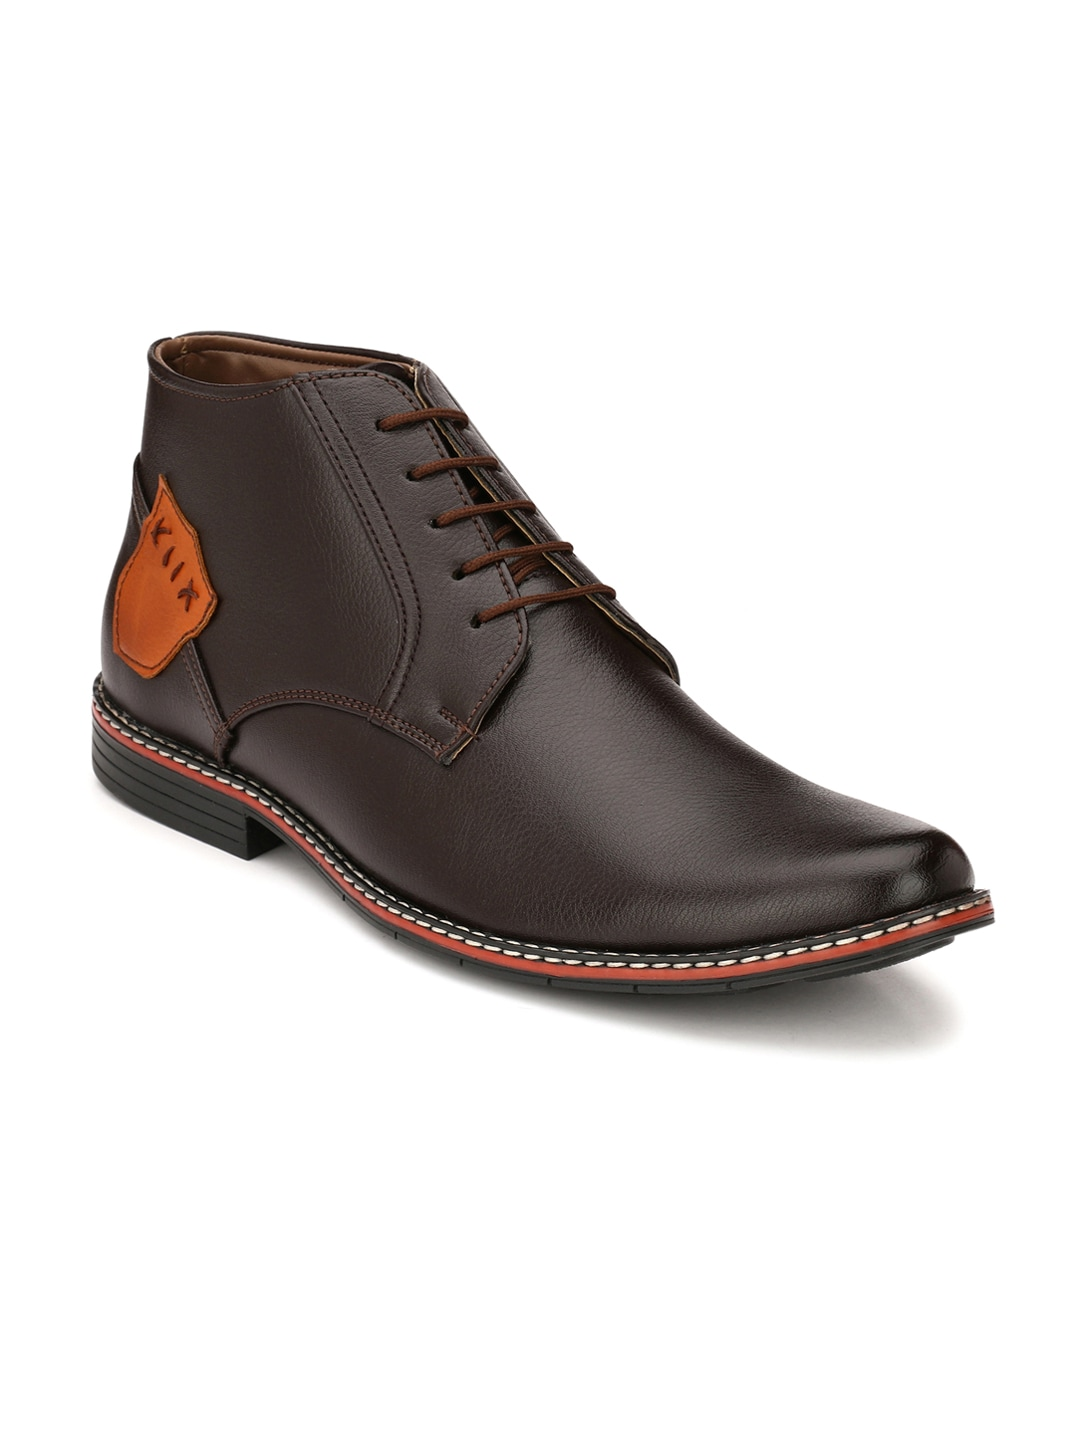 John Karsun Men Brown Solid Mid-Top Flat Boots image